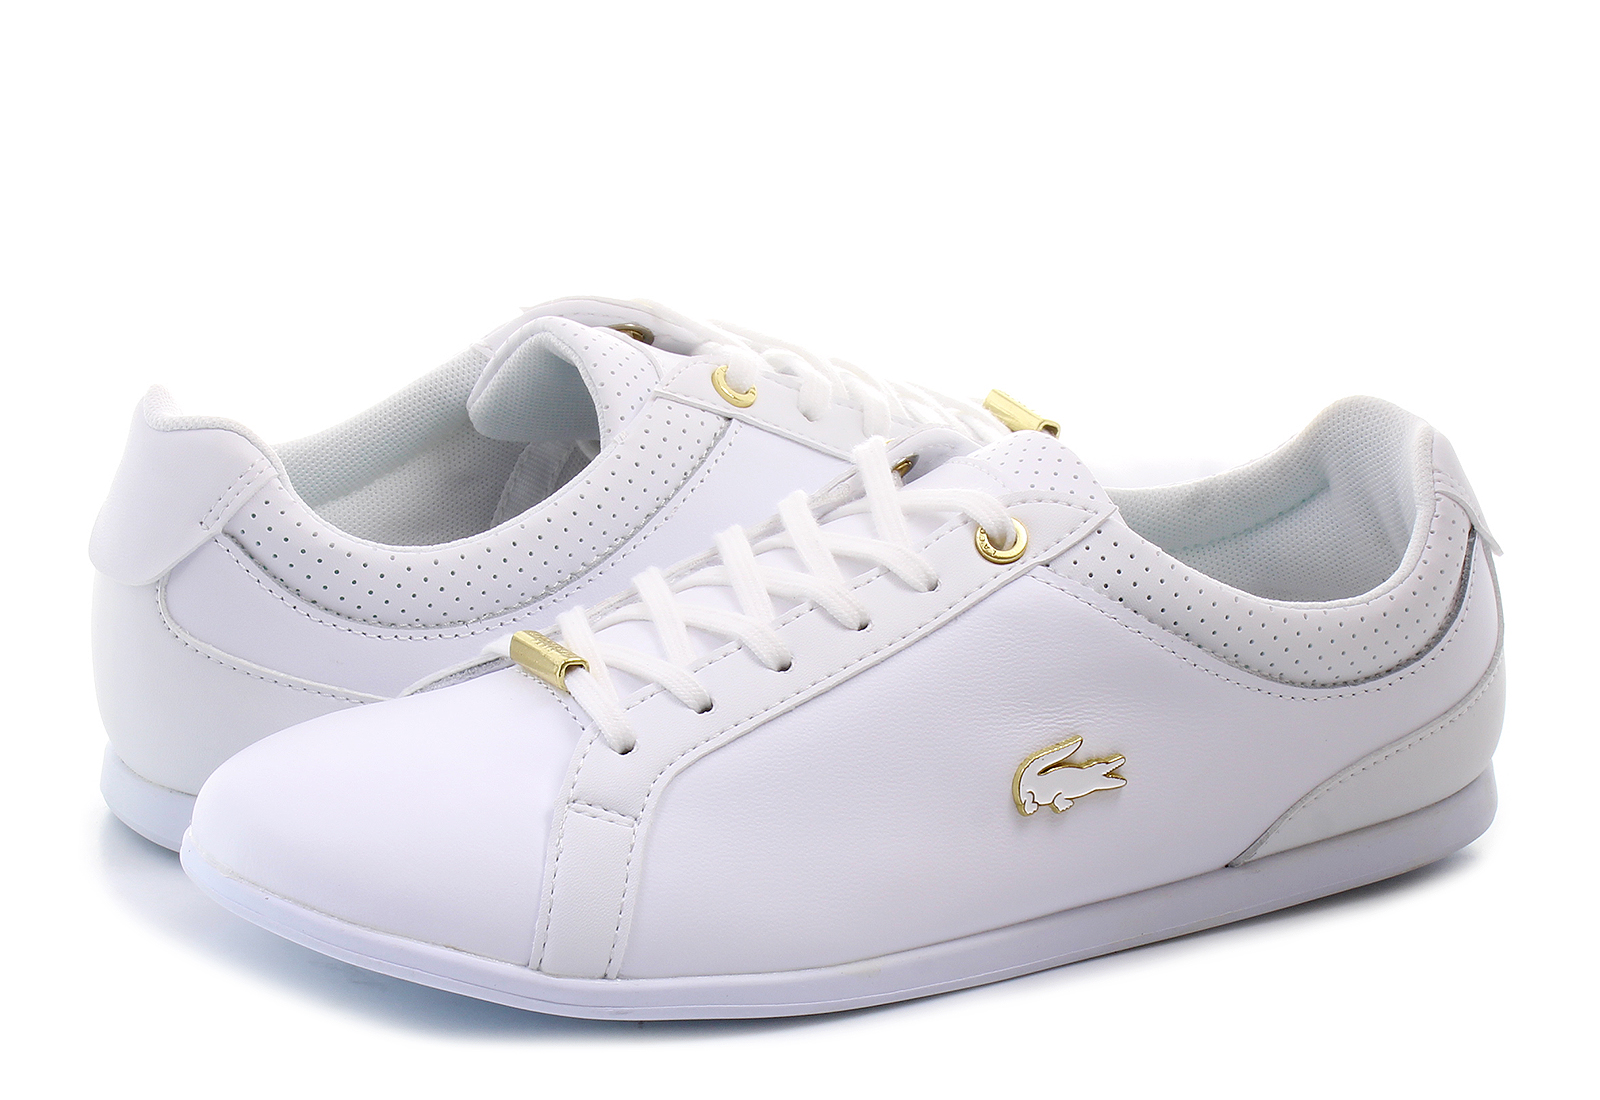 a3732ad10 Lacoste Shoes - Rey Lace - 173CAW0081-216 - Online shop for sneakers ...